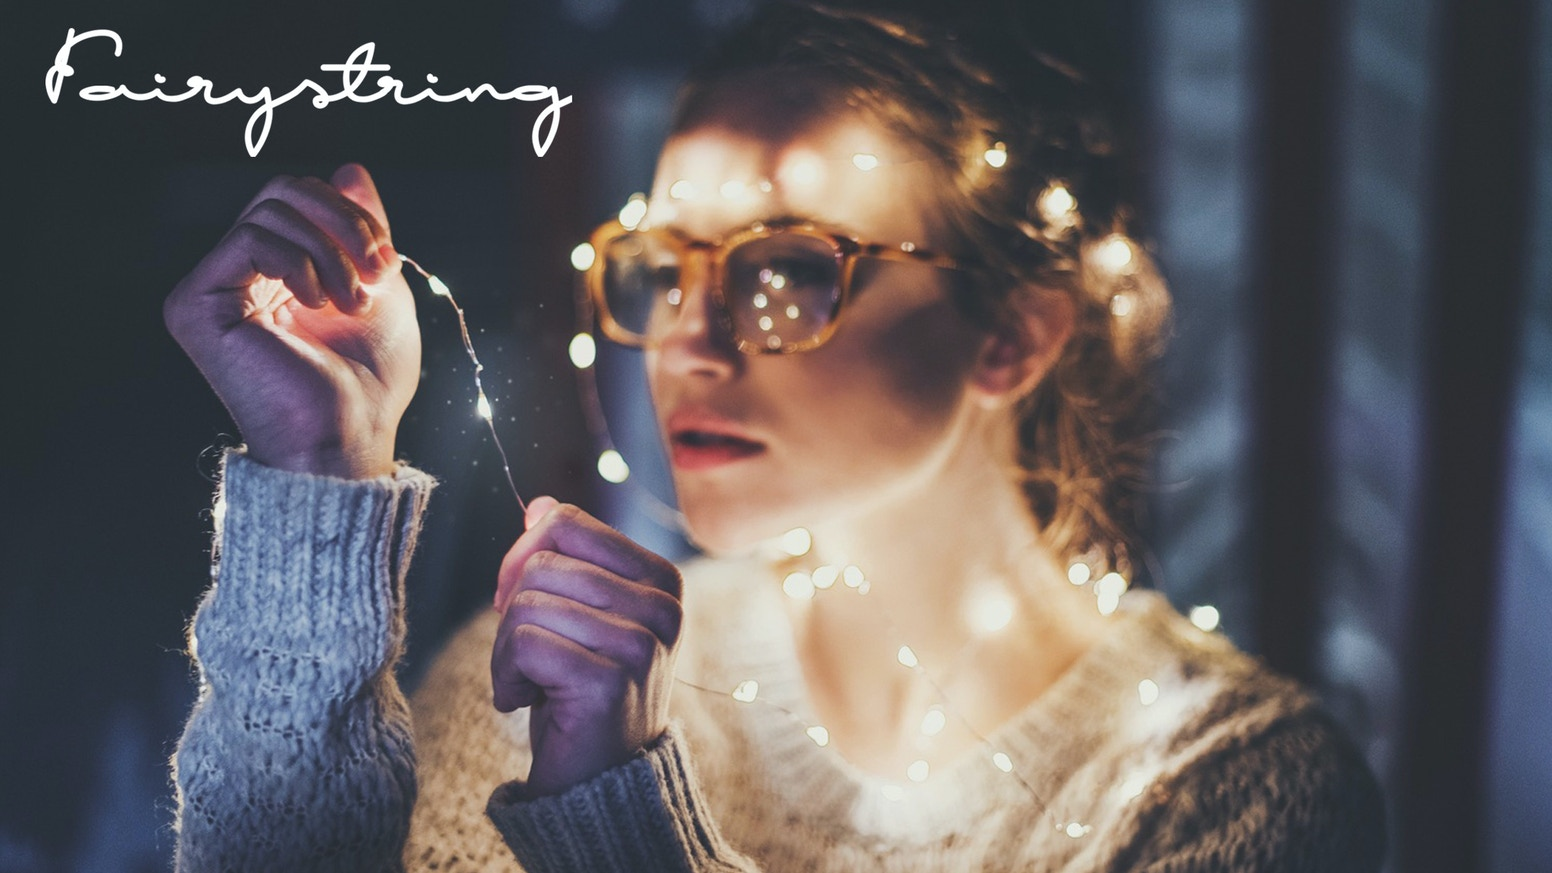 Beautiful string lights perfect for transforming anything you do into an enchantingly lit event. Portable and simply rather magical.